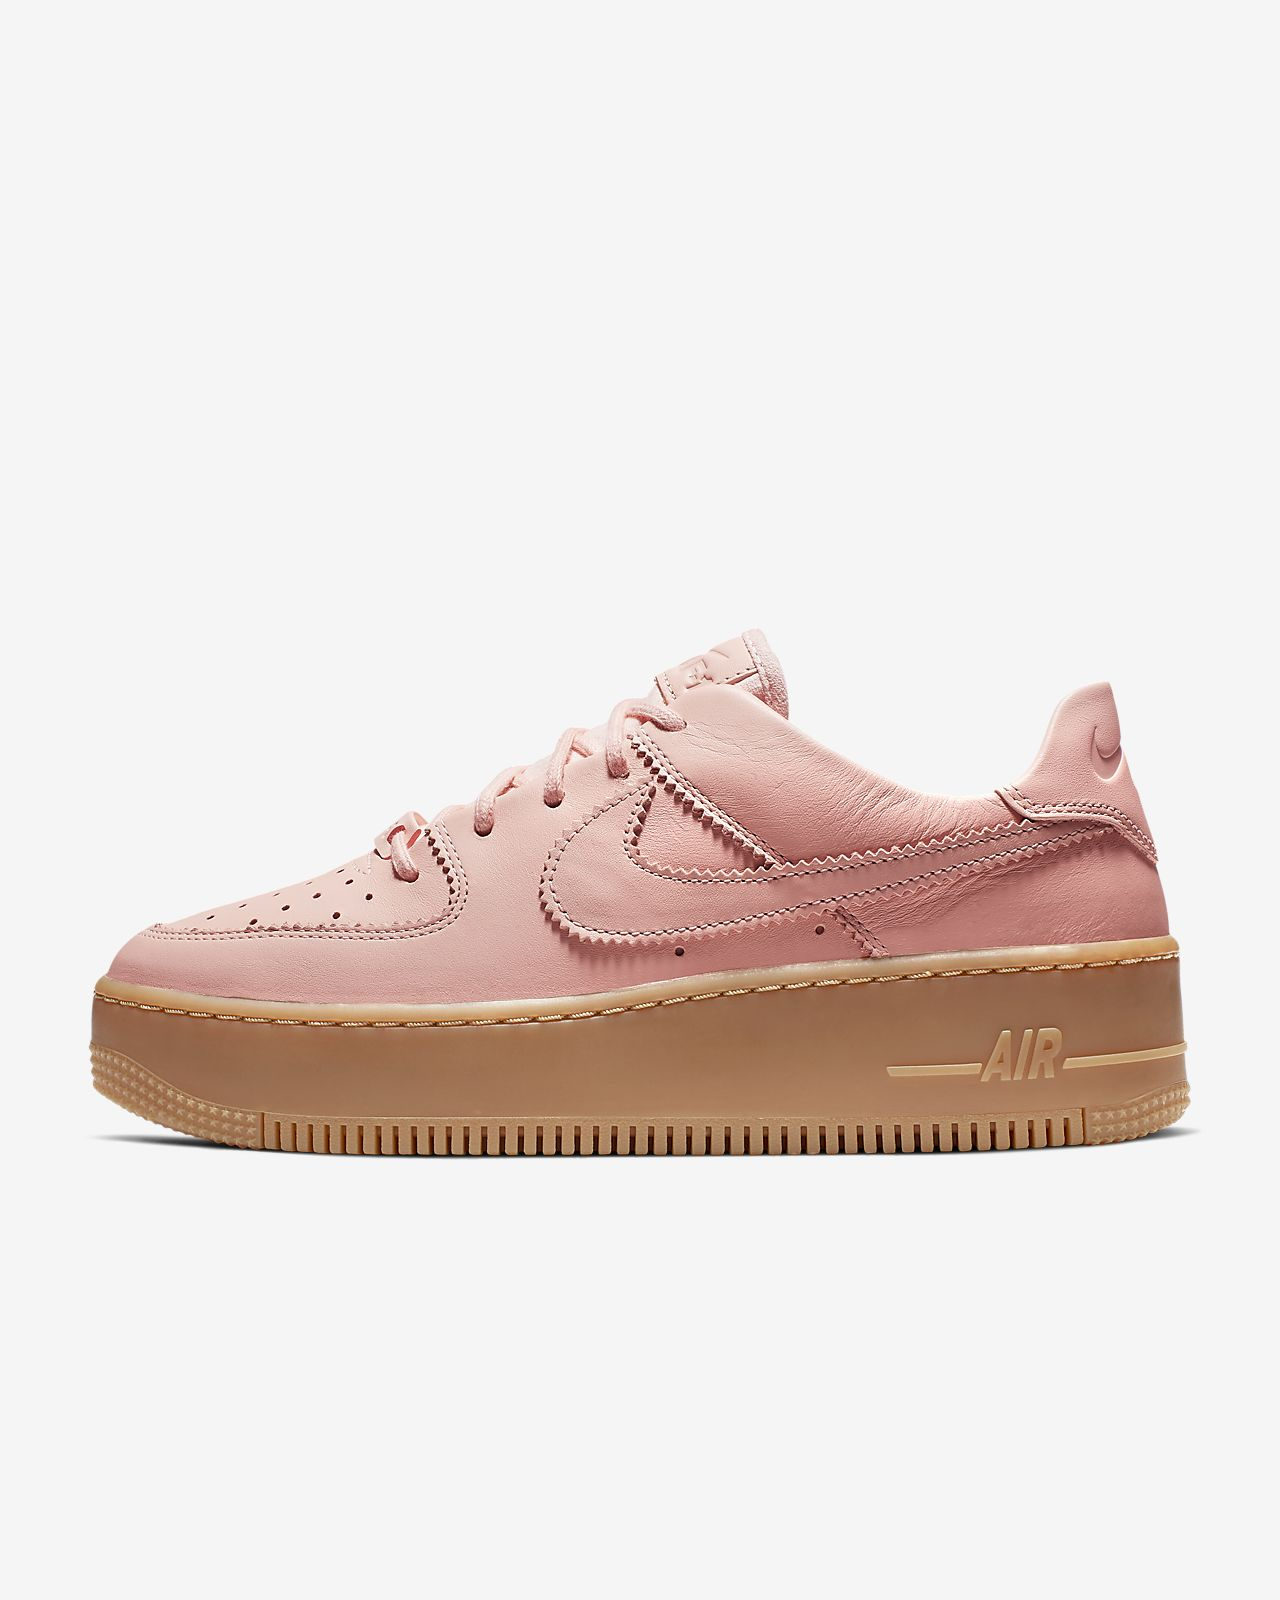 separation shoes b20b0 854cd Nike Air Force 1 Sage Low LX Women's Shoe